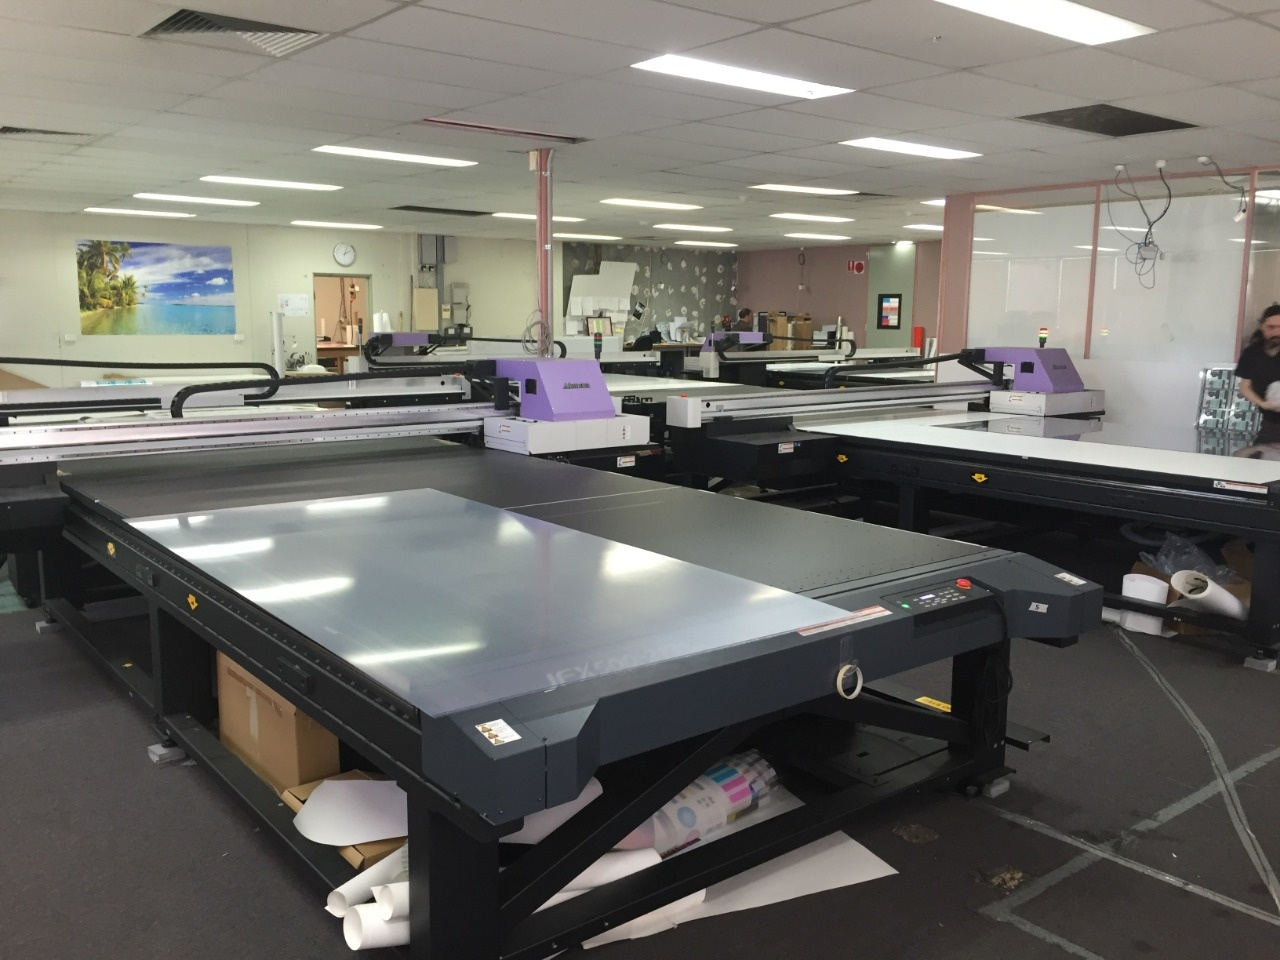 5 x JFX500-2131 LED UV Flatbed Printers in the one location - Avon's Melbourne facility